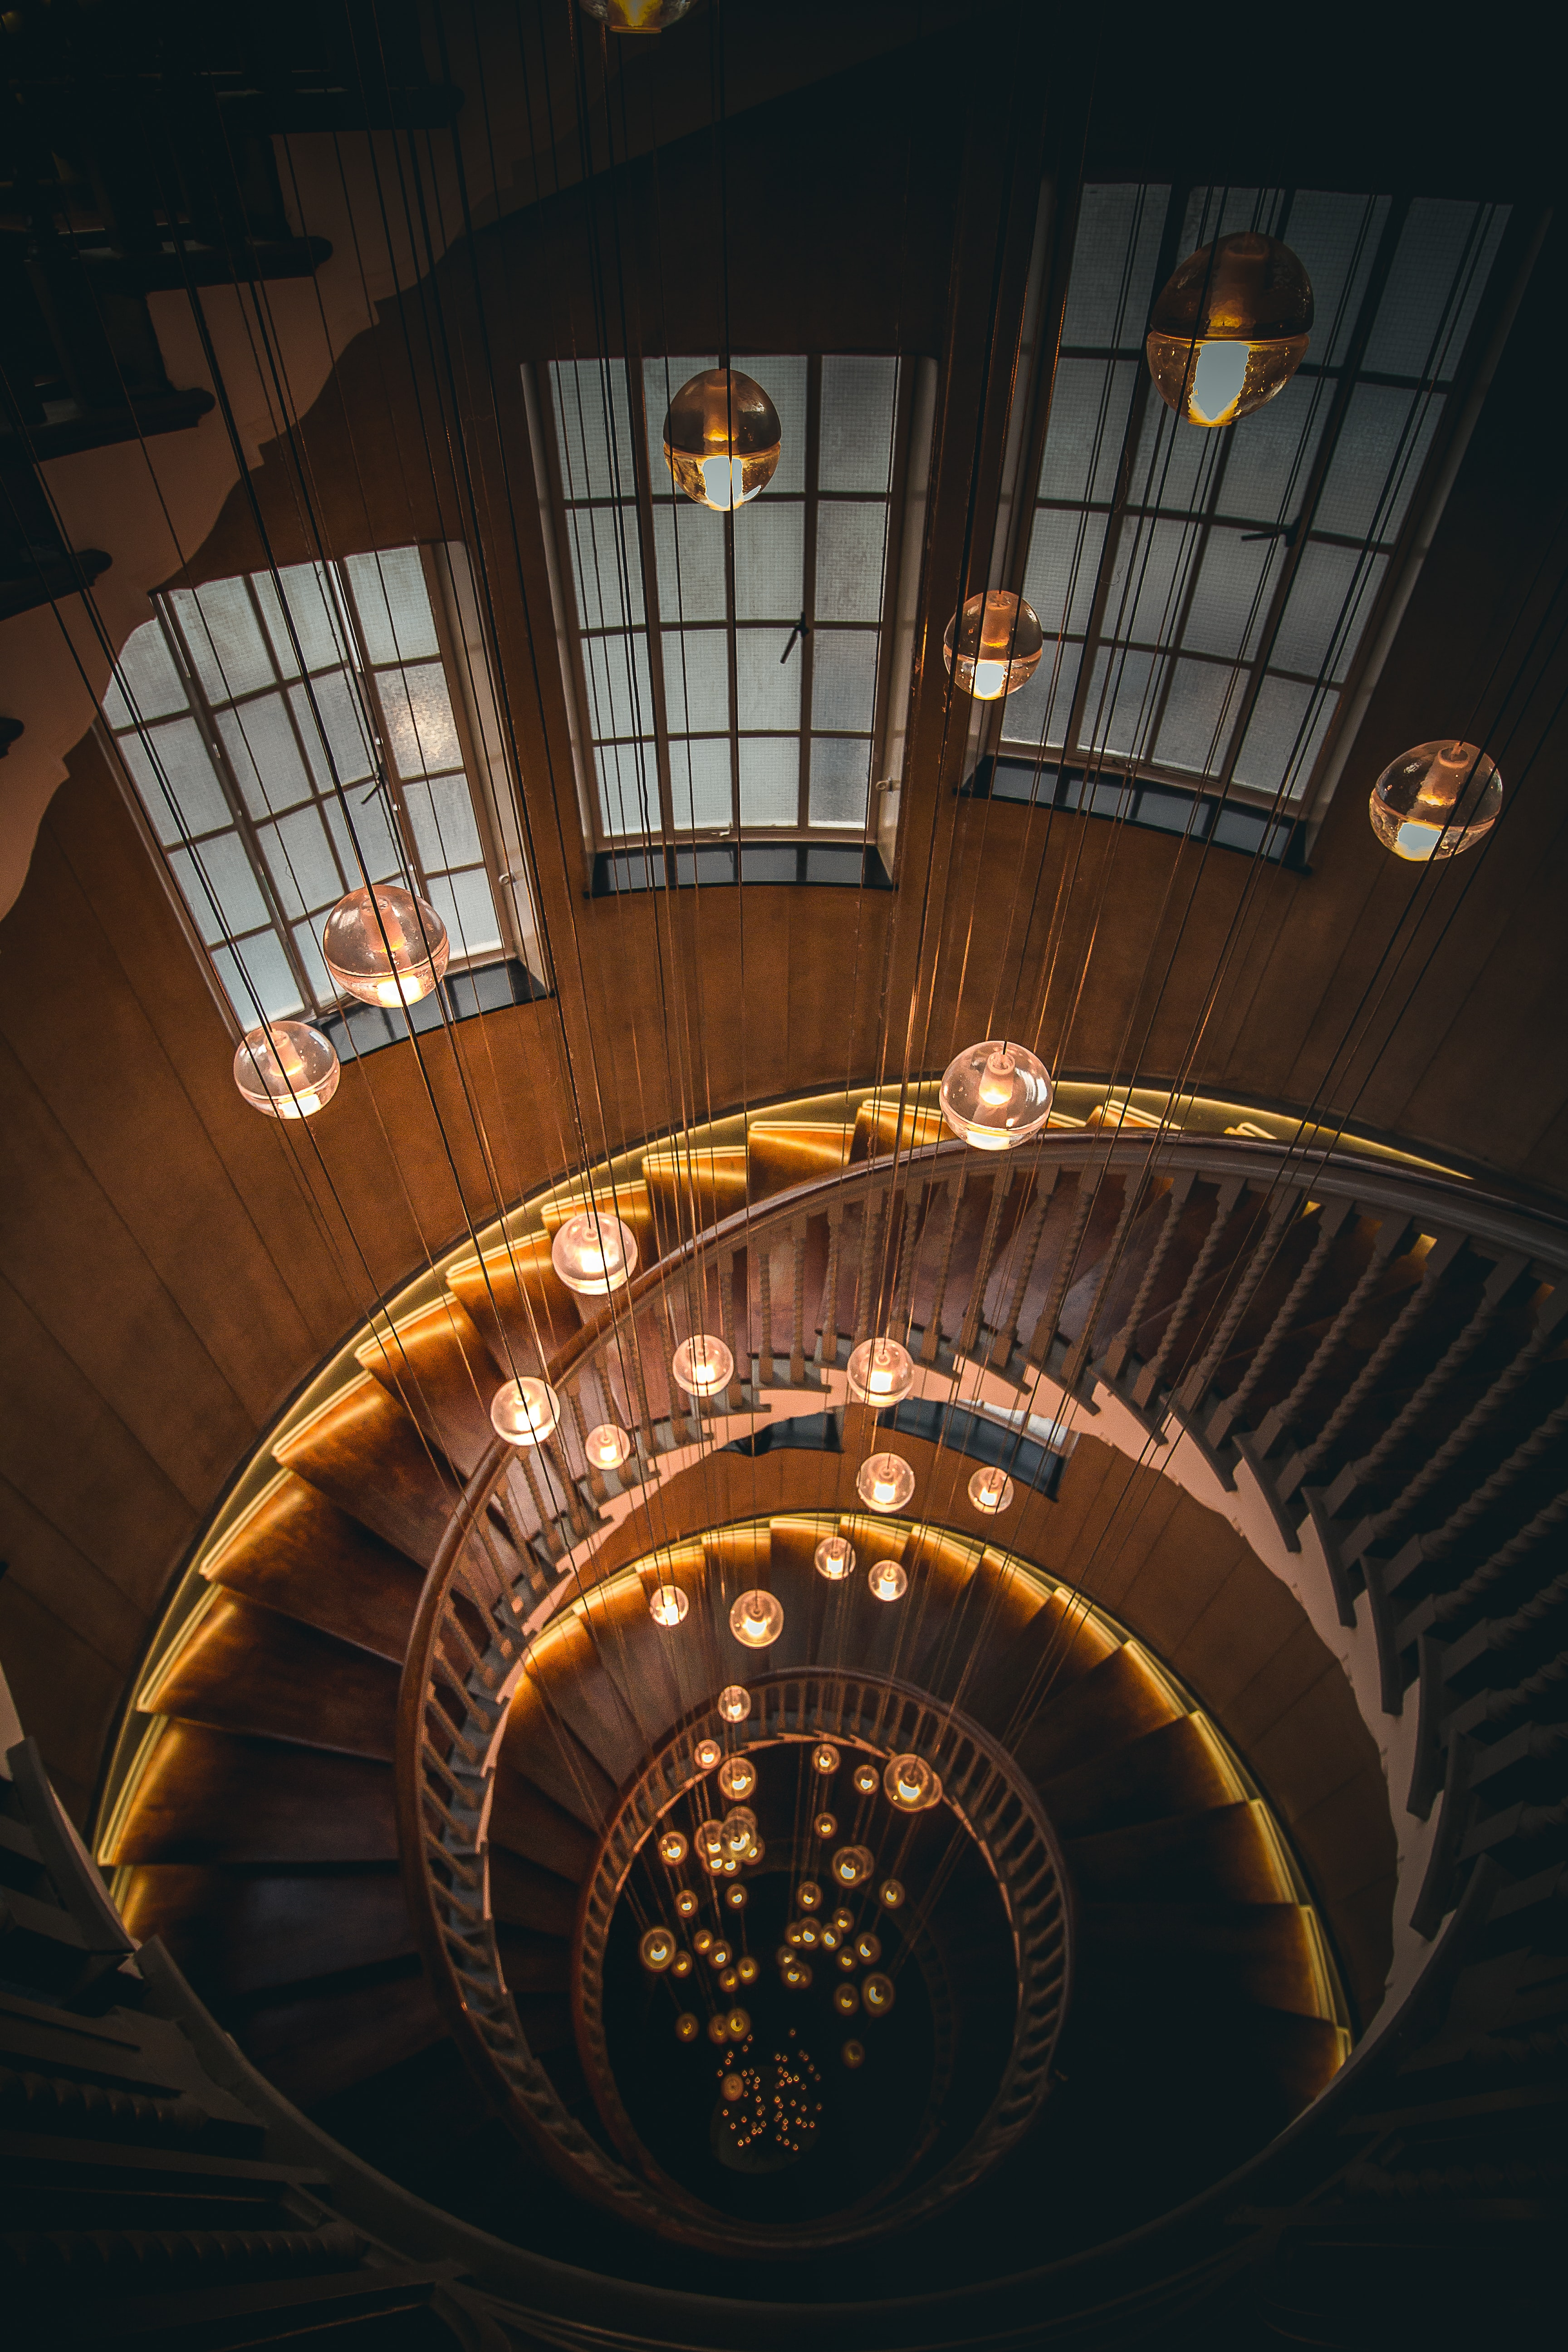 Looking down on a spiral staircase with hanging lightbulbs at Heal's